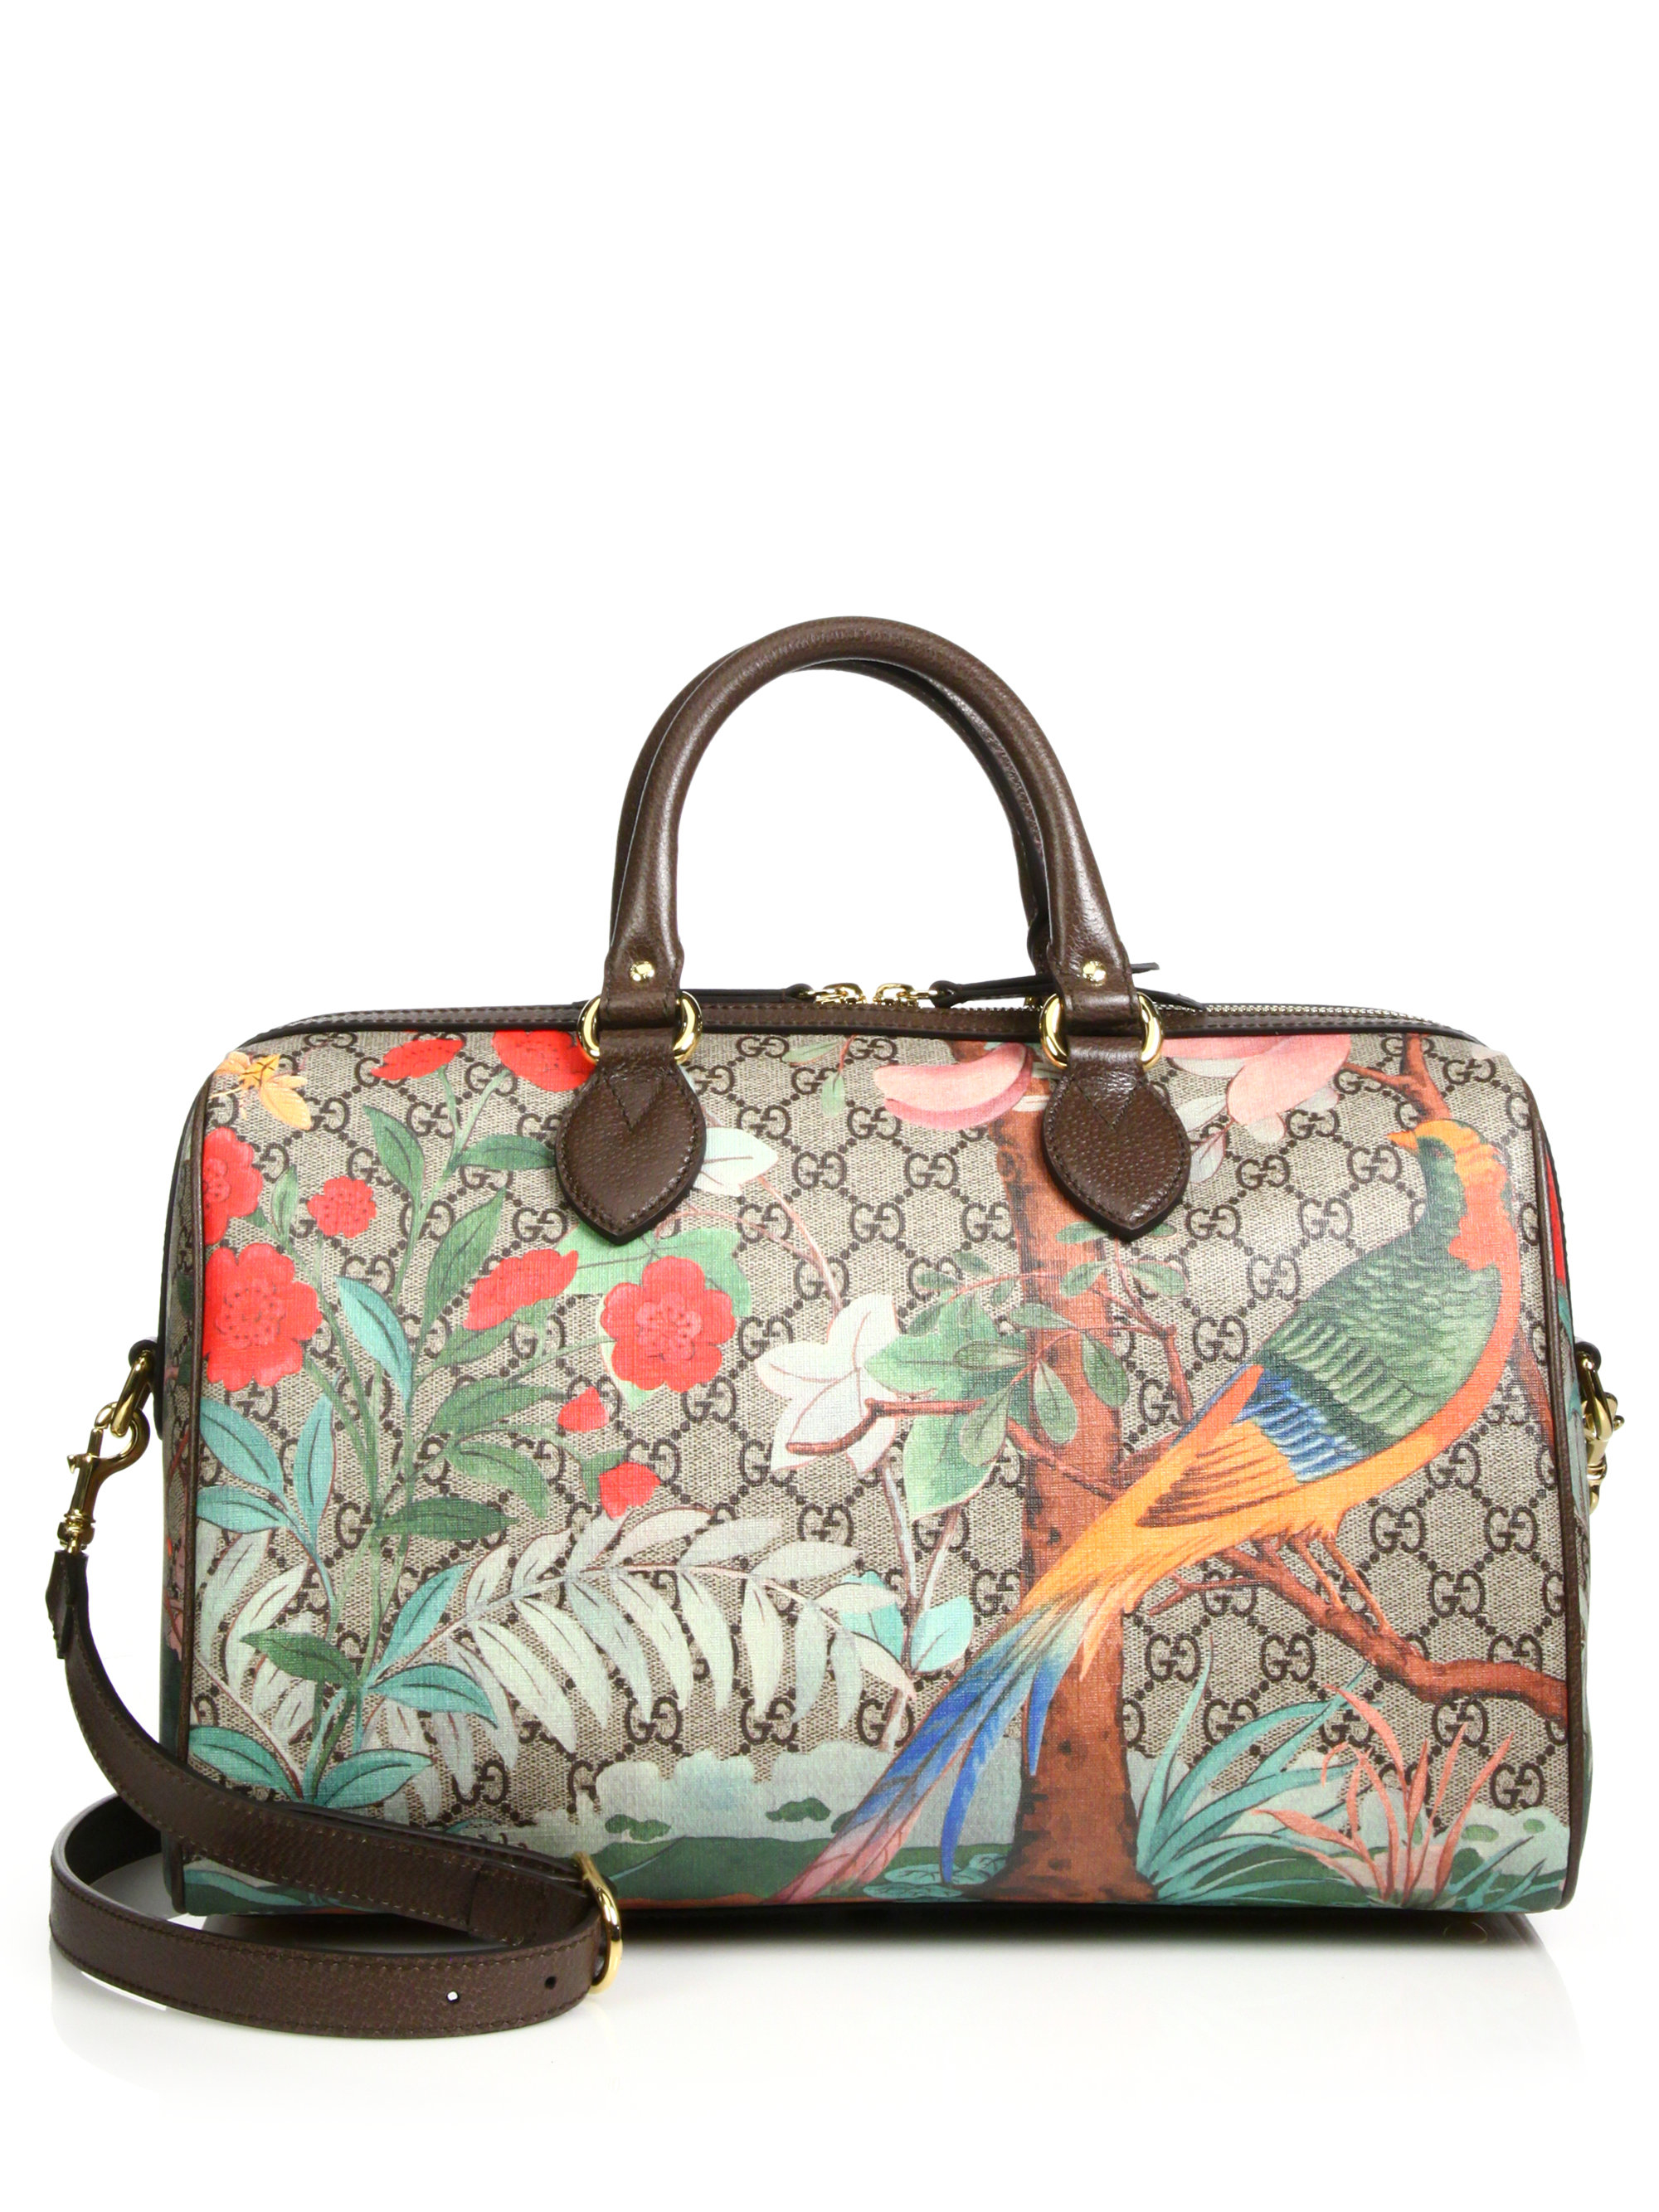 eced9ec0861e97 Gucci Tian Gg Supreme Top-handle Boston Bag - Lyst